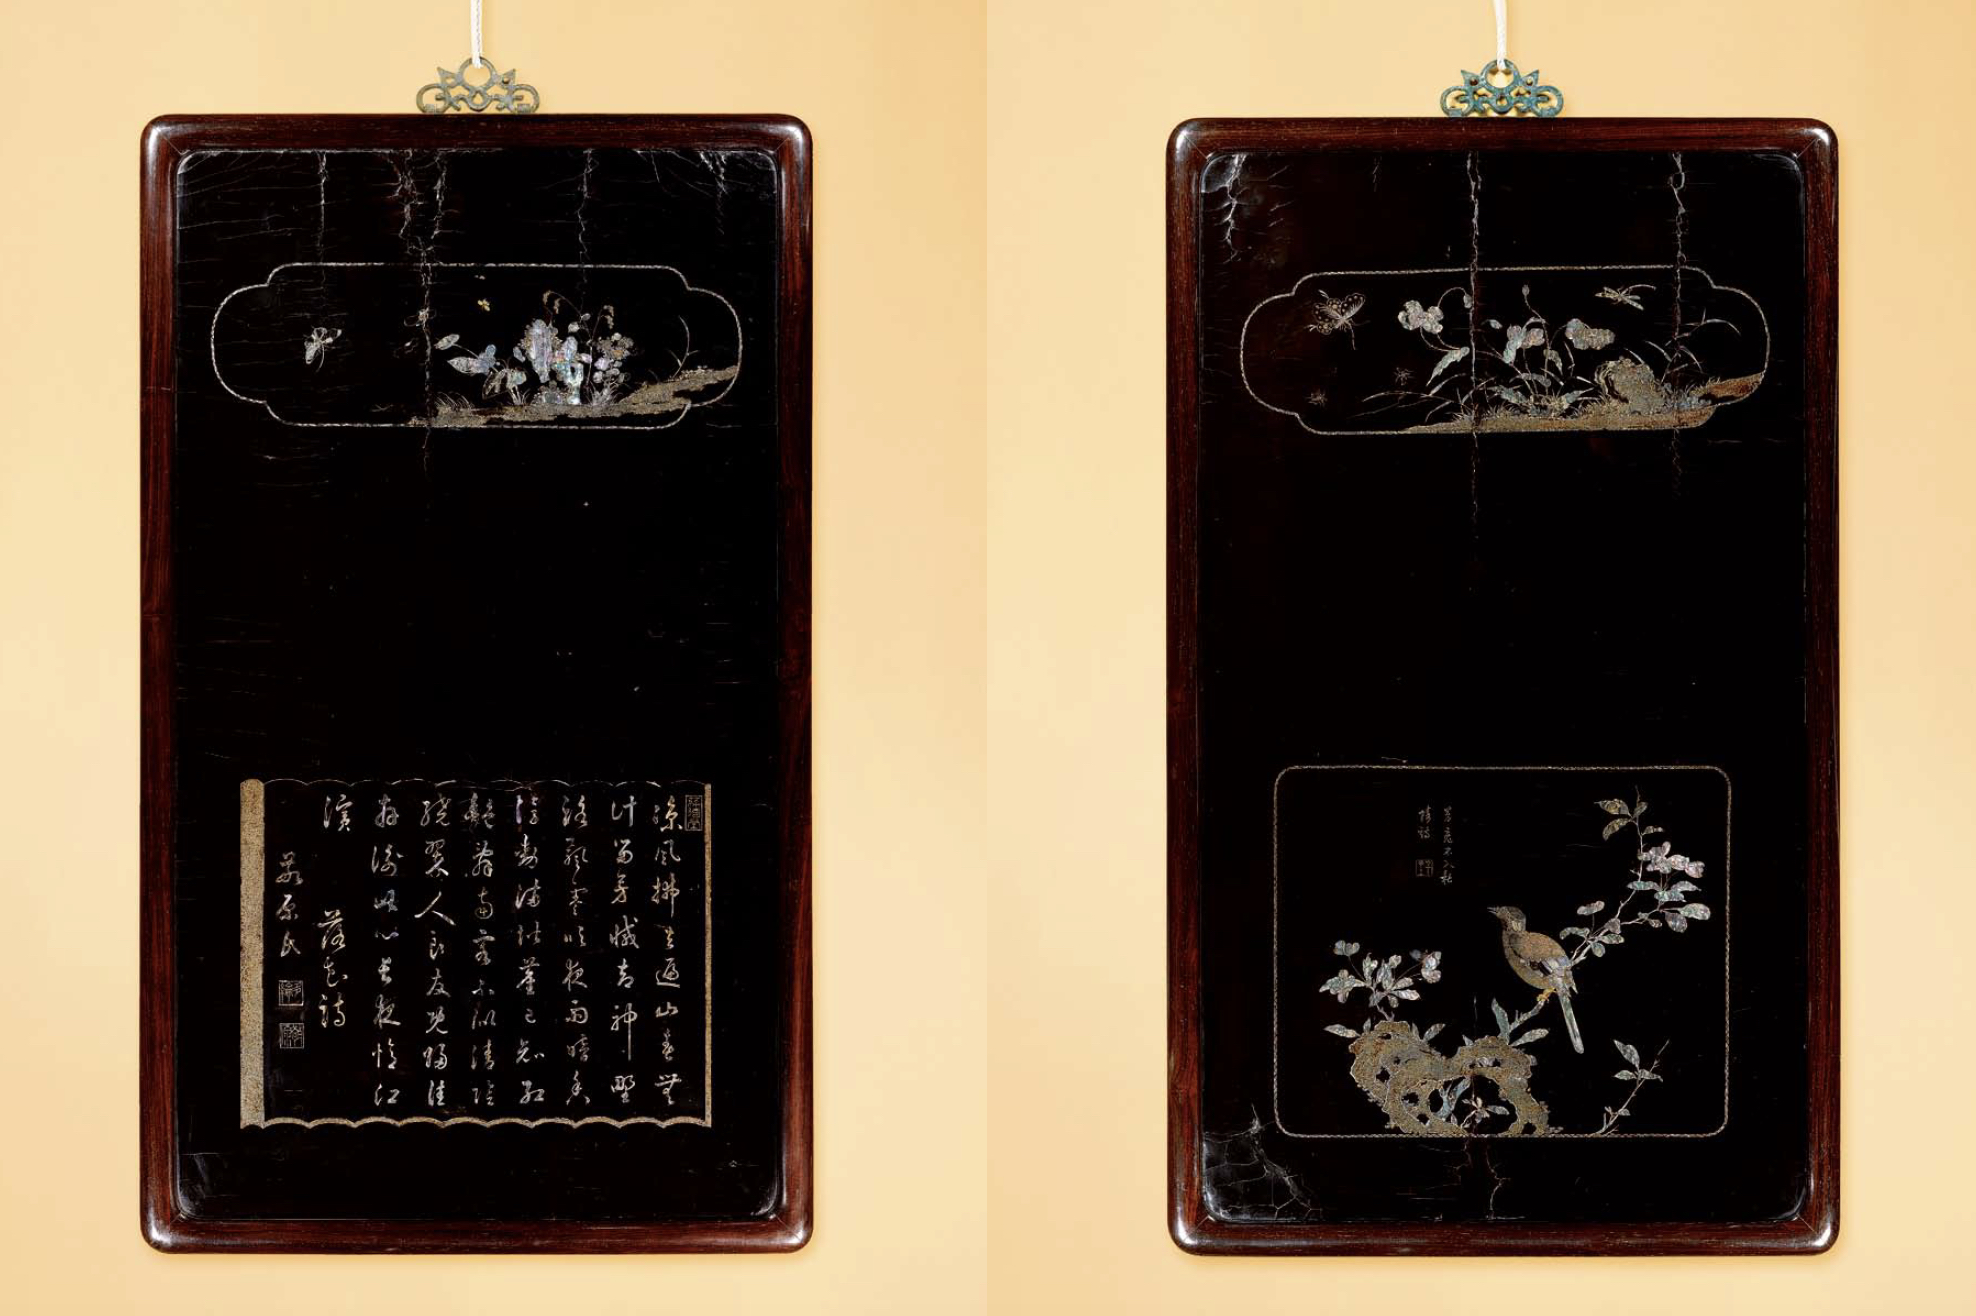 Dimensions: each 80cm high x 47cm wide  Provenance: - A private Hong Kong collection  Published: 'The Luxury of Chinese Lacquer', Littleton & Hennessy Asian Art (March 2010)  The panels are of rectangular shape, each finely inlaid in mother-of-pearl and gold. Each are decorated variously with panels containing butterflies, birders, deer or poetic inscriptions.  Compare a set of five panels in the 'Hebei Provincial Cultural Bureau' also by Jiang Qianli. The use of gold and silver inlays alongside mother-of-peark in the Hebei panels is reminiscent of those on the current panels, as well as the style of inlay work. Furthermore, one of the current panels bears the name if Duo Lun (year unknown), an official of the Kangxi reign. His daughter married one of Kangxi's grandsons, Prince Yinzhi, and he went on to become the Right Vice Minister of The Board of Rites in 1756.